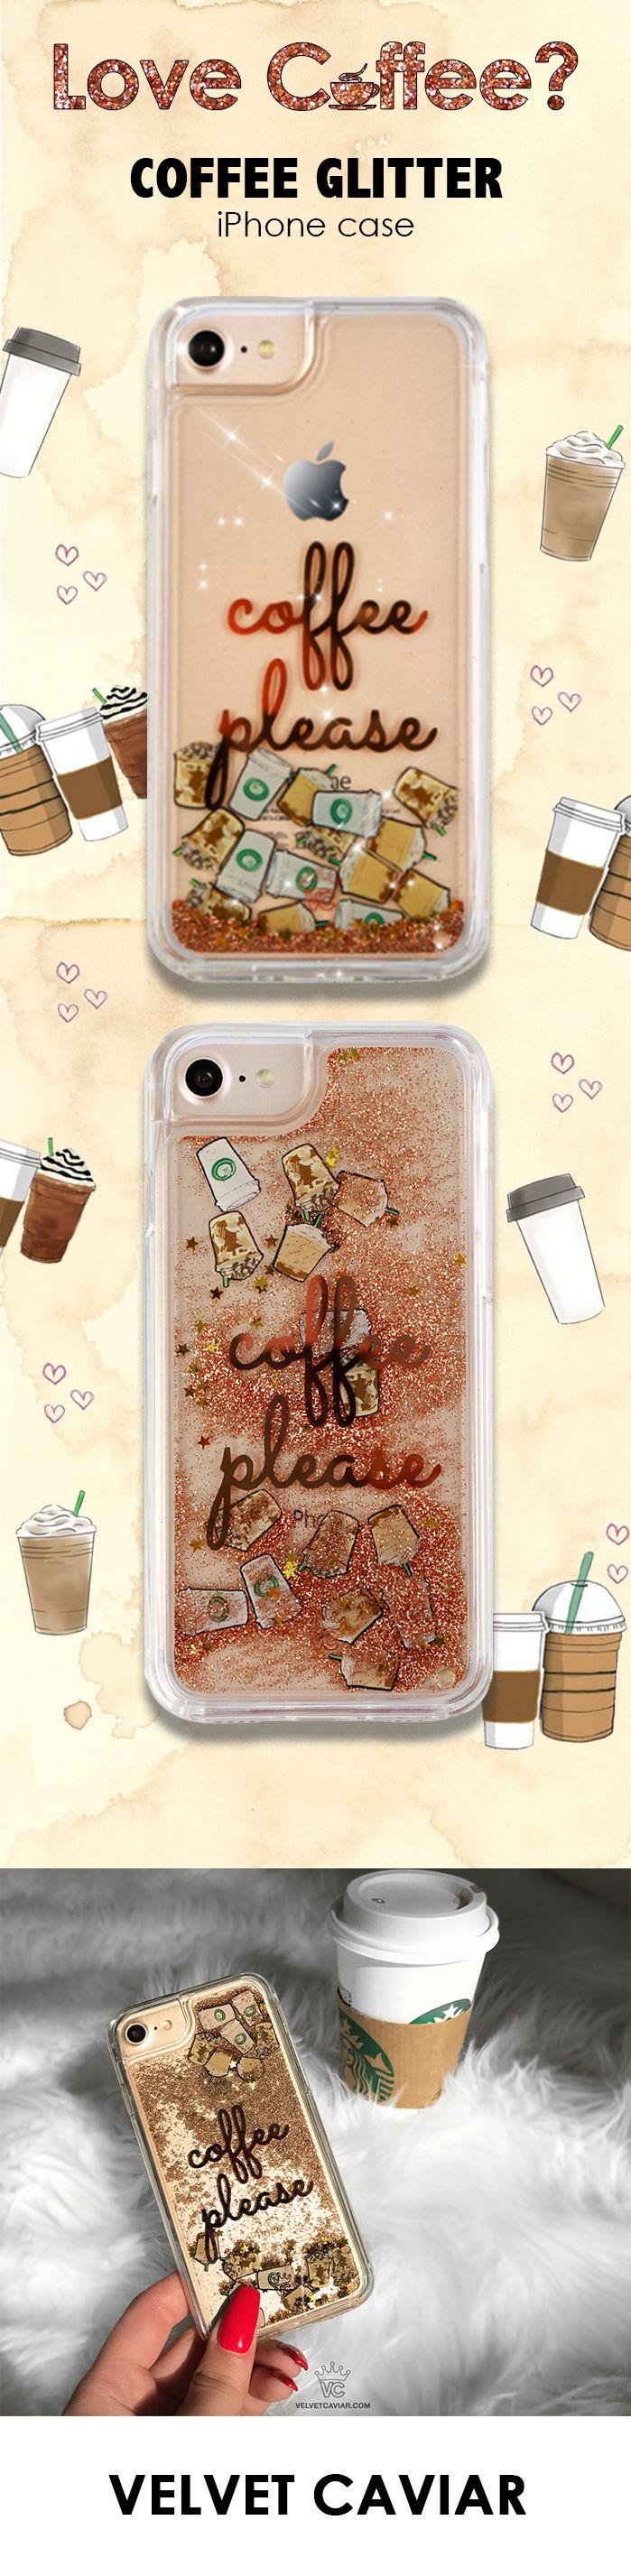 finest selection 7b8e9 294f6 Coffee Please Glitter iPhone Case | phone cases. | Iphone cases ...